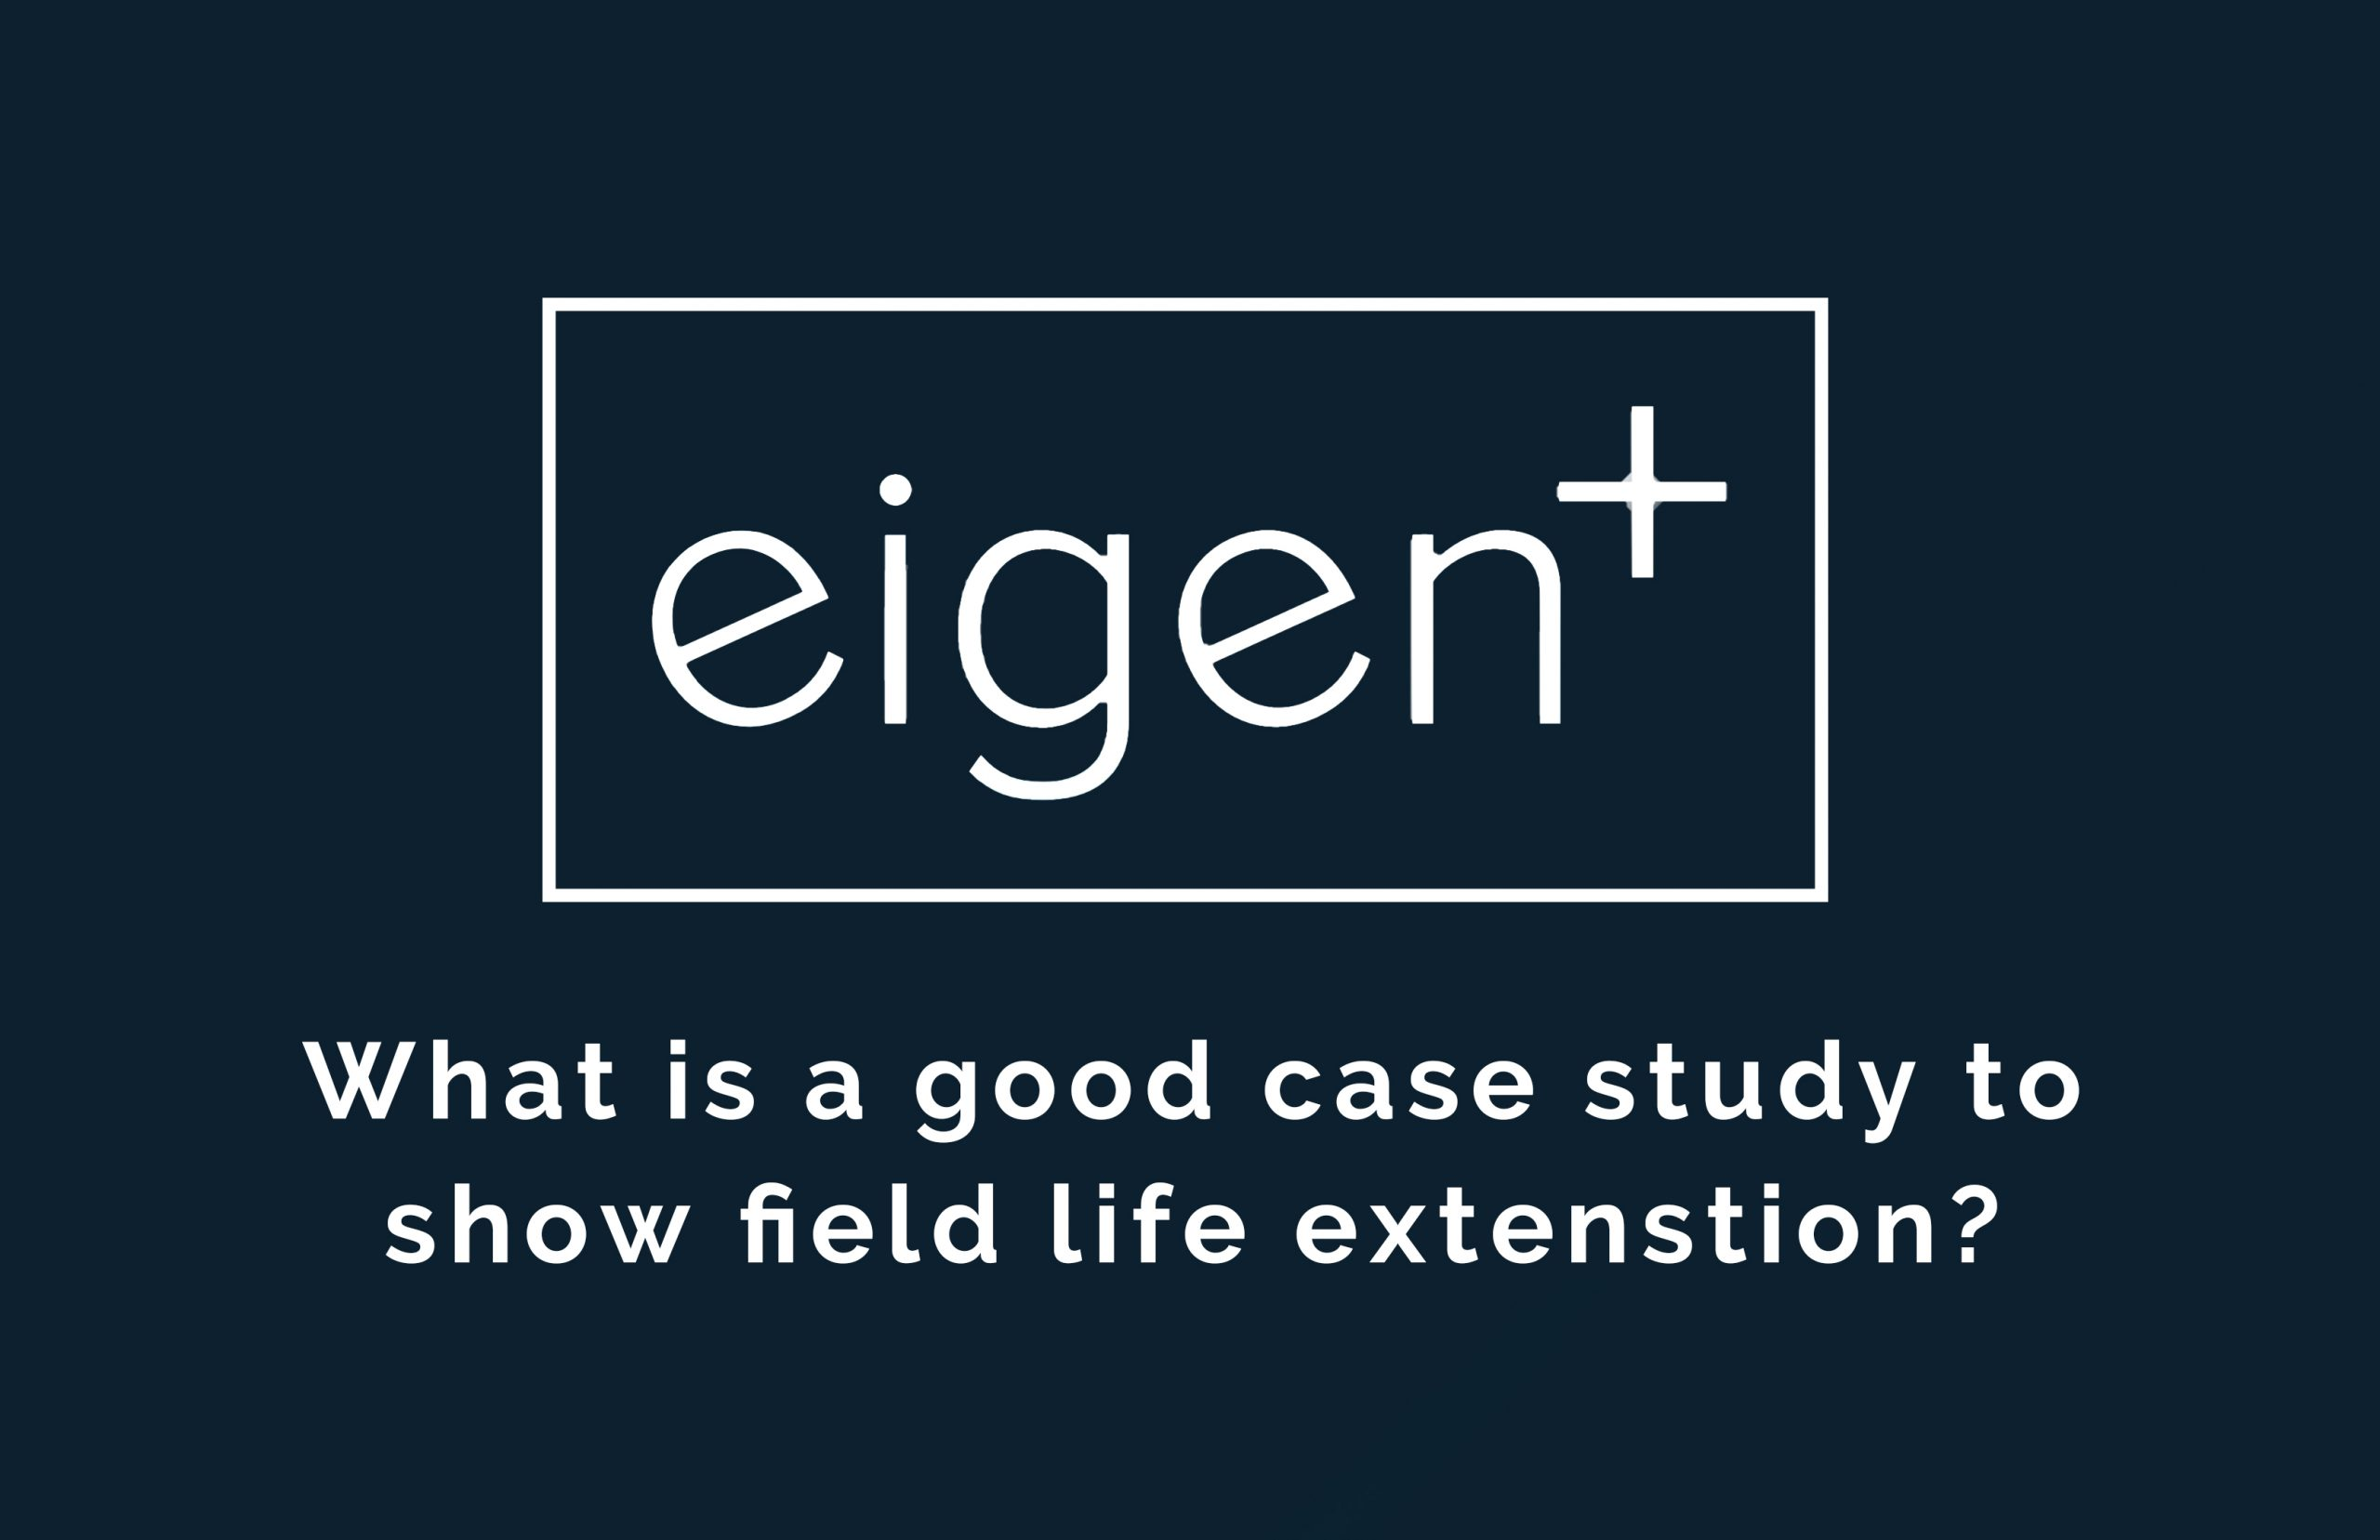 Future Outlook Series: What is a good case study to show field life extension?